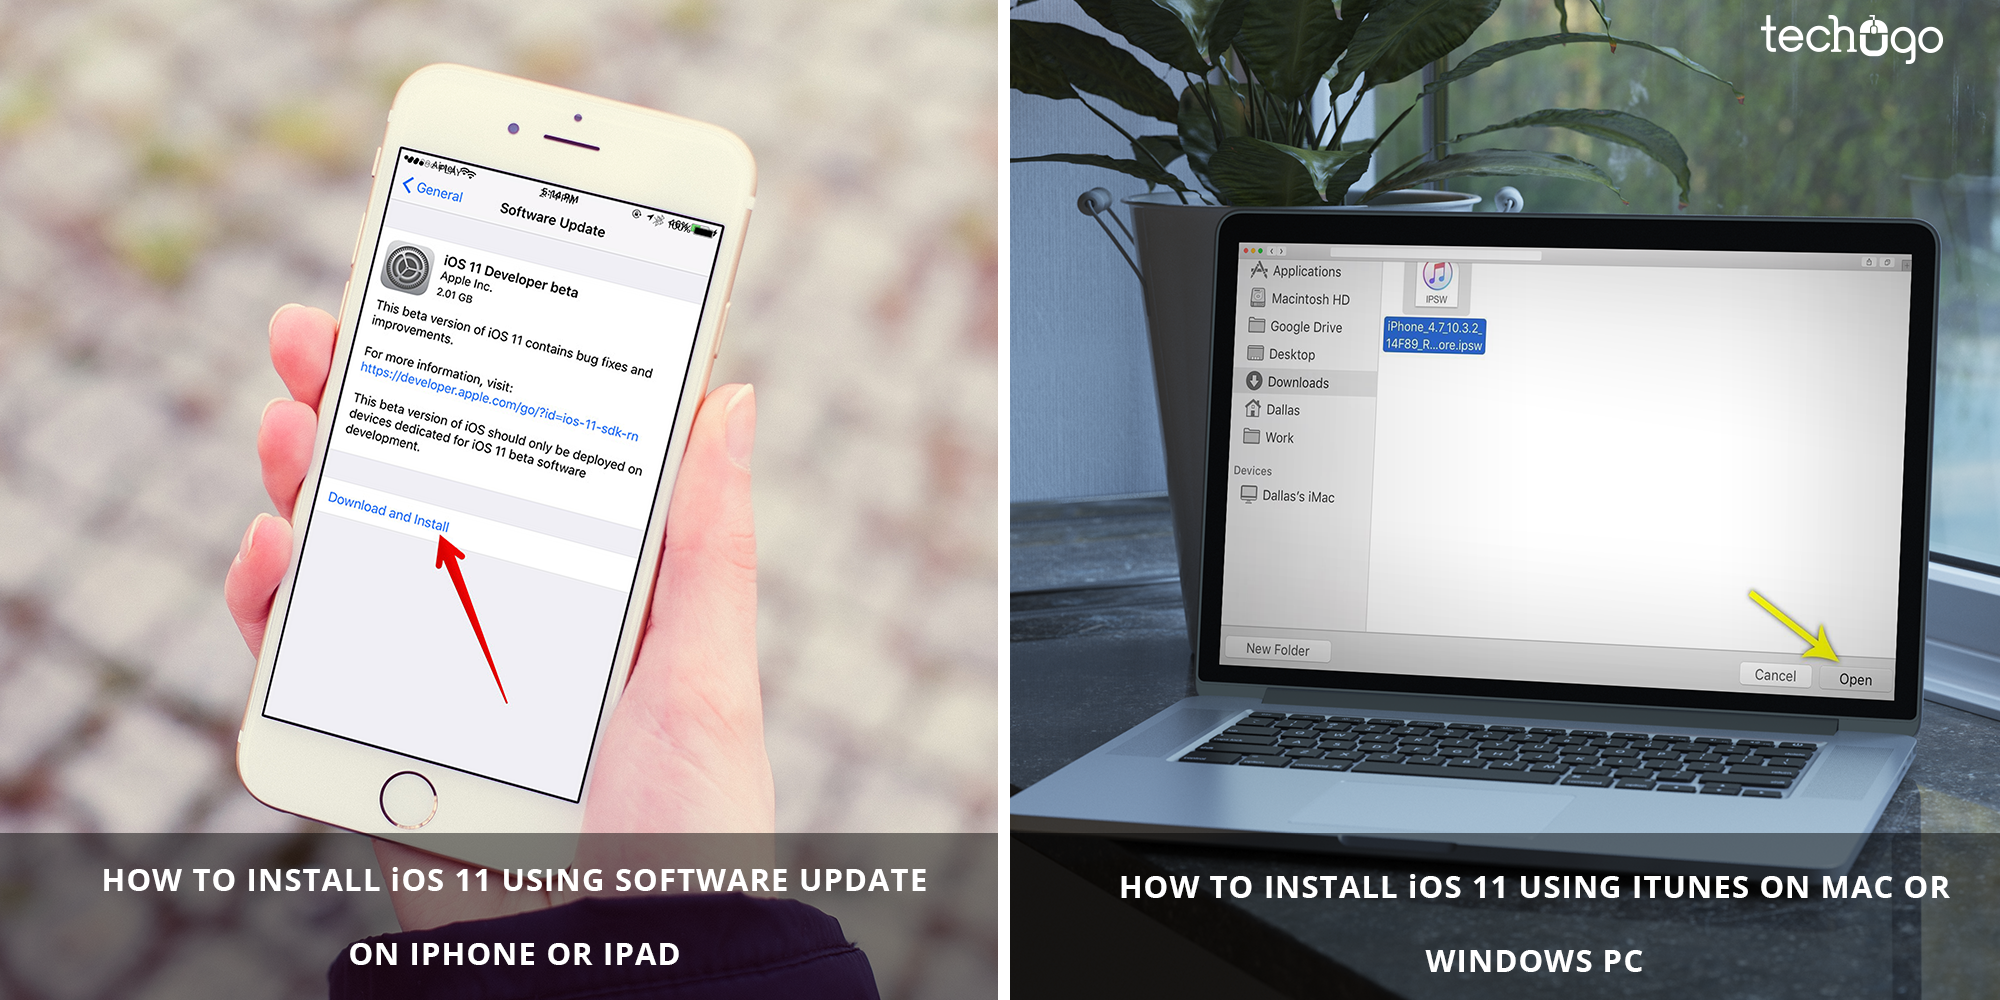 HOW TO INSTALL iOS 11 ON YOUR iPhone /iPad